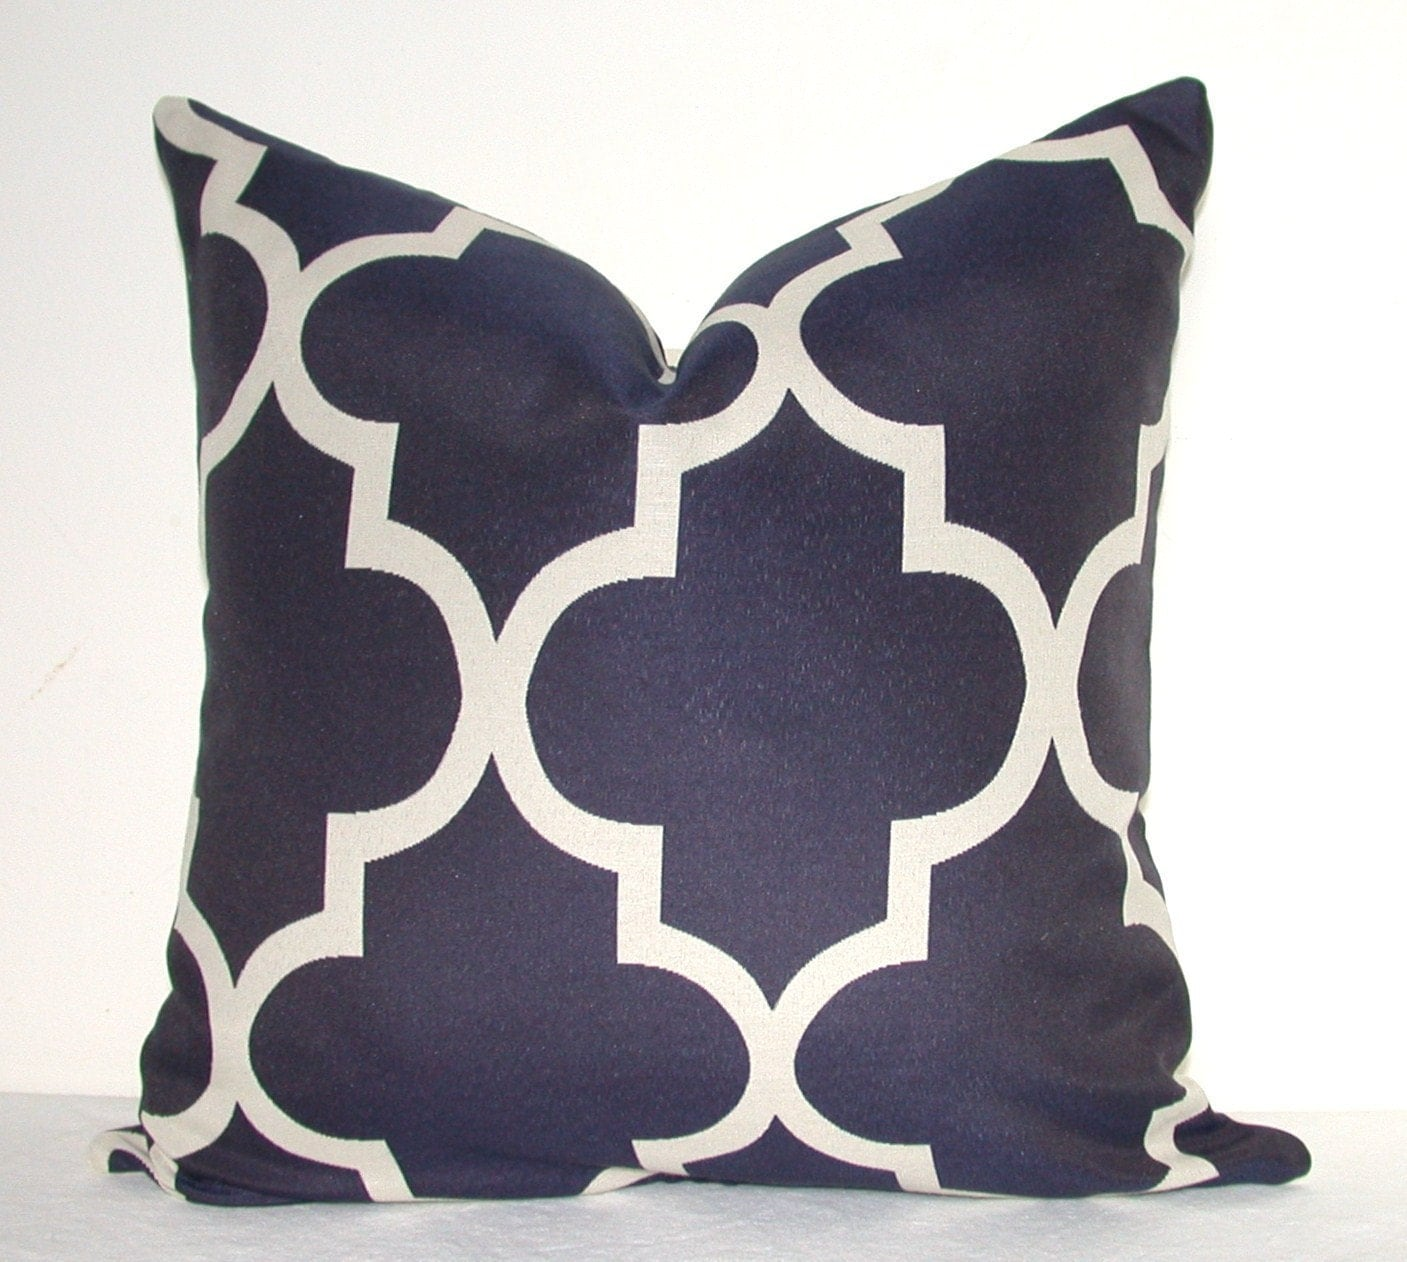 A PAIR of Pillow Covers Decorative Pillows Sofa Pillows : ilfullxfull277922625 from www.etsy.com size 1407 x 1262 jpeg 287kB